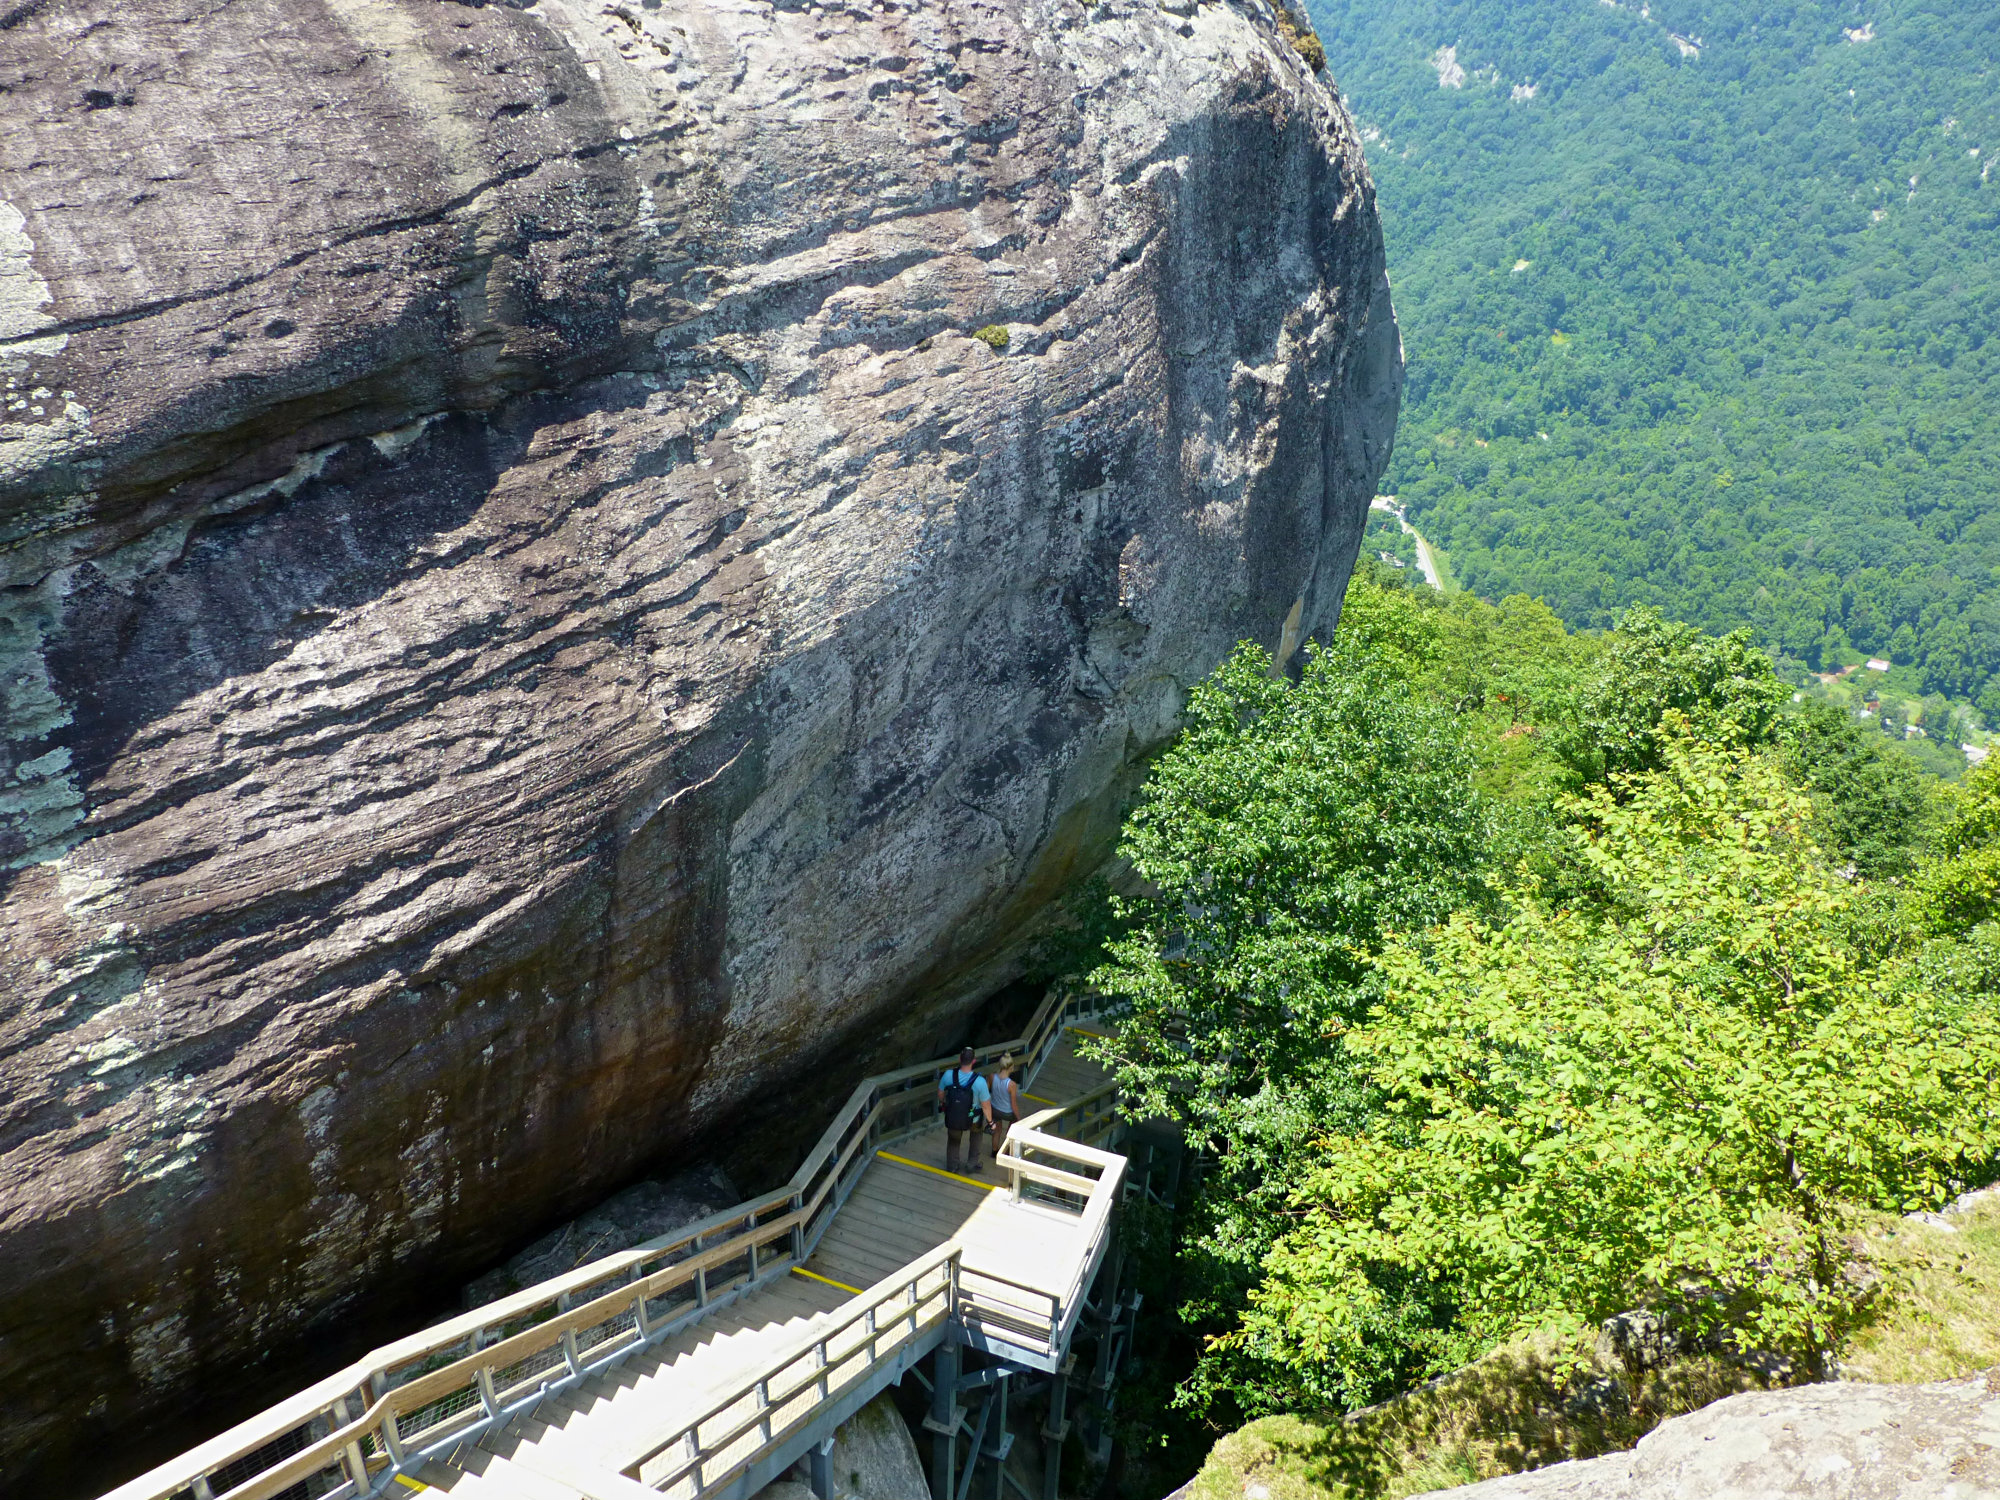 View looking down on a gigantic boulder with people walking down stairs next to it